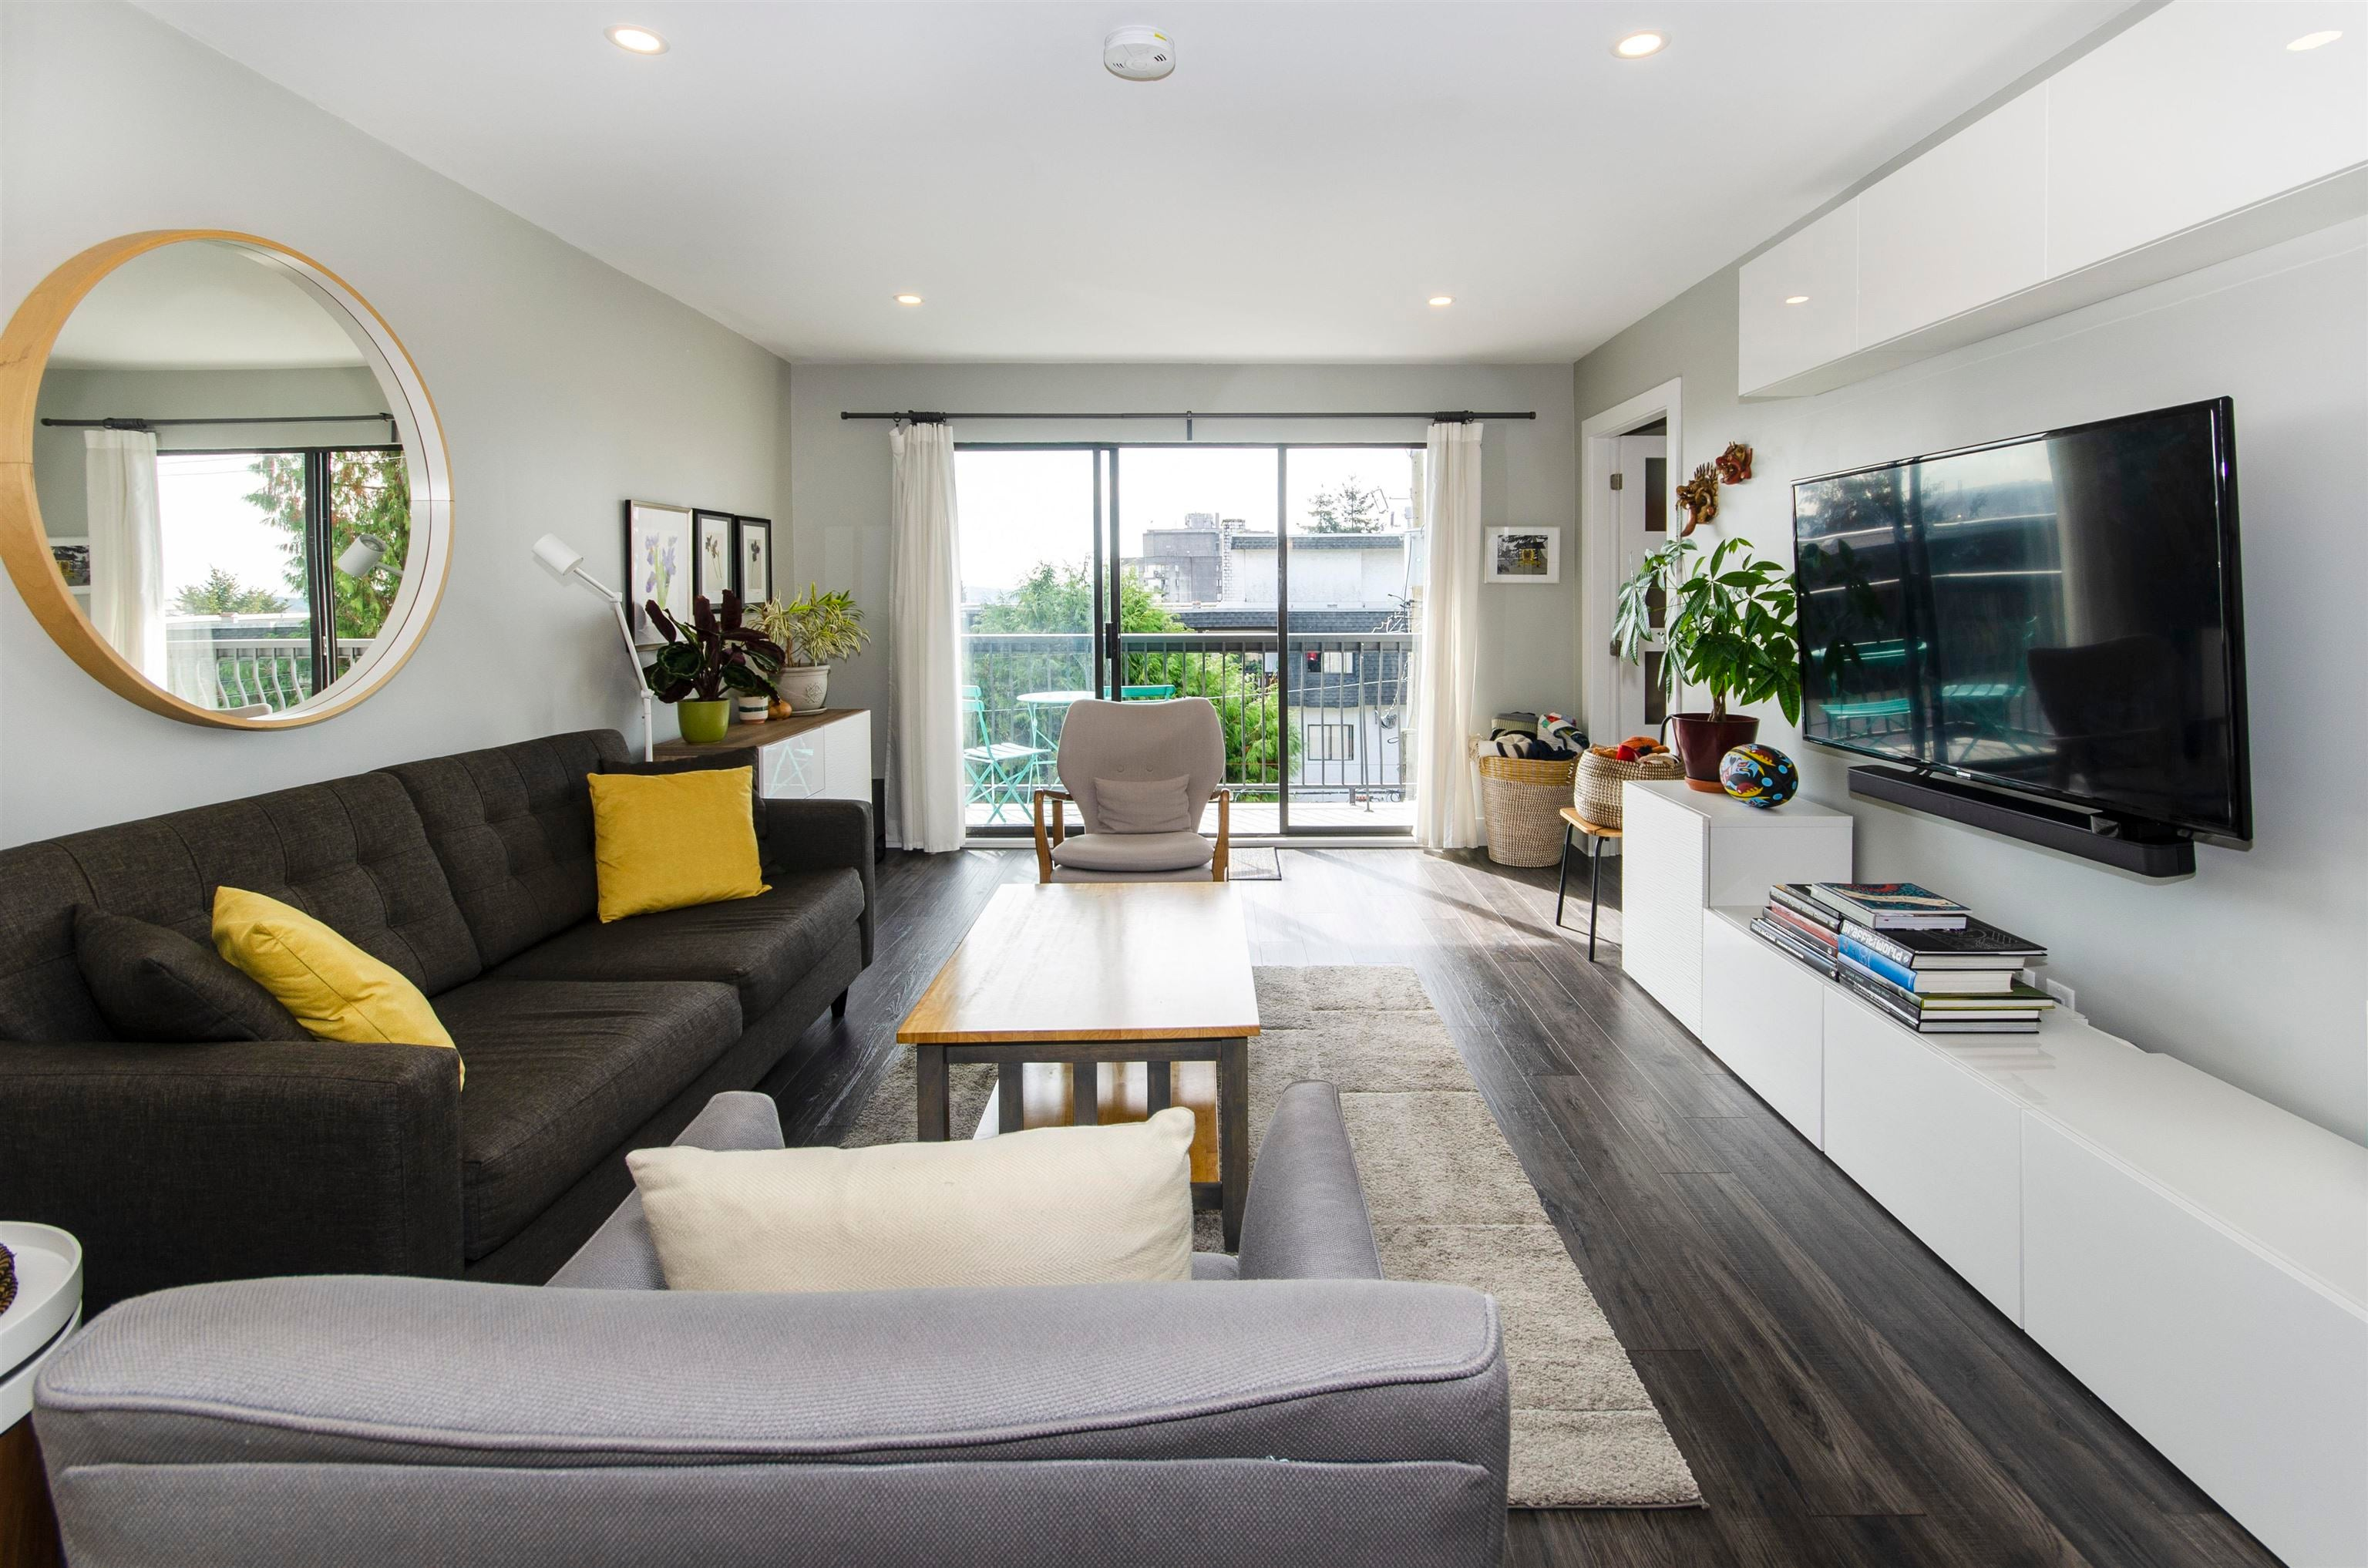 206 175 E 5TH STREET - Lower Lonsdale Apartment/Condo for sale, 2 Bedrooms (R2624759) - #4